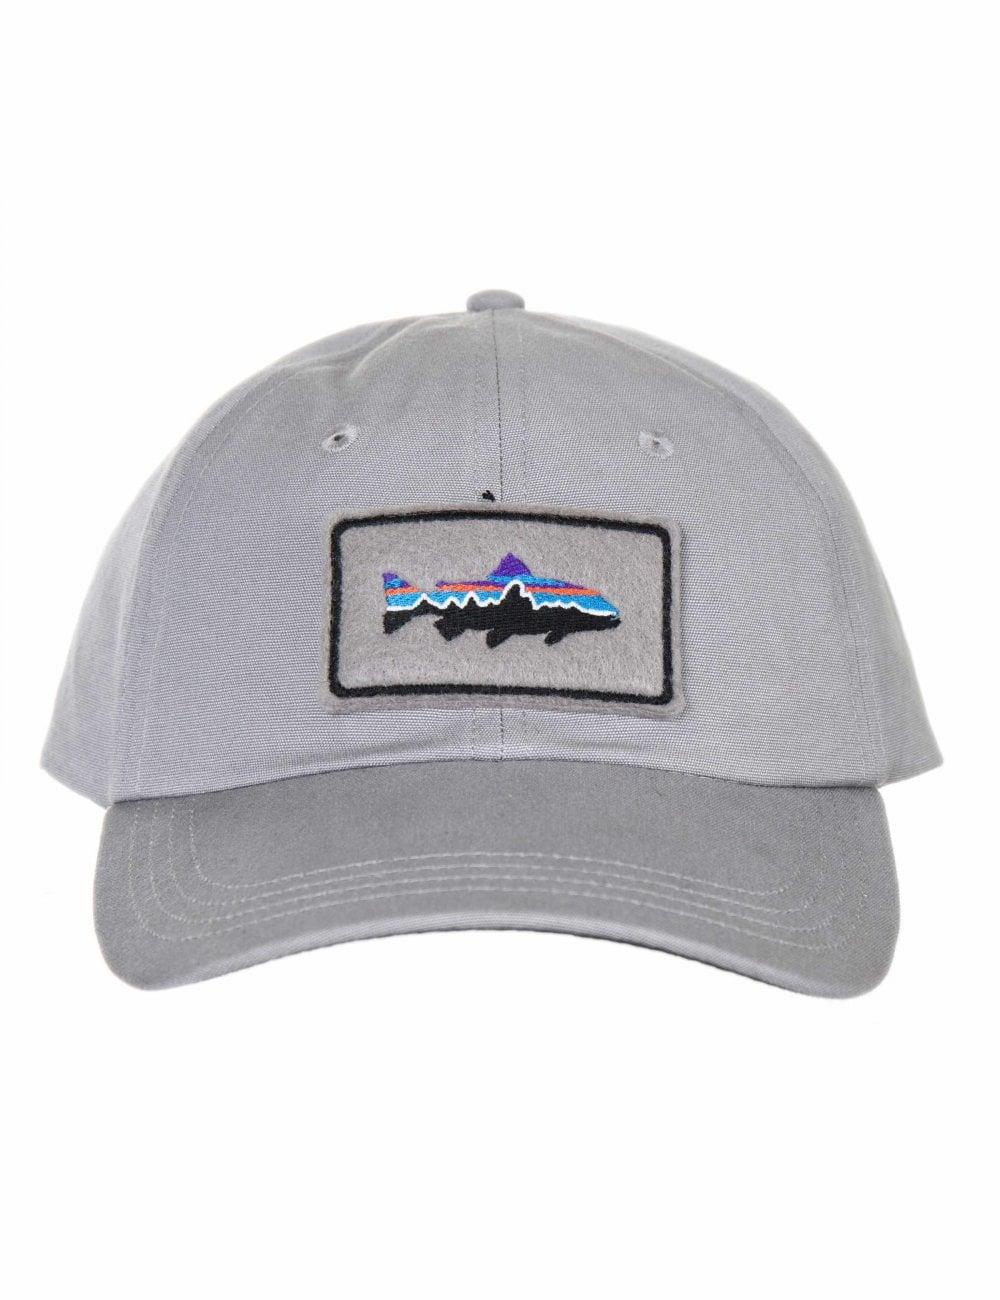 aa324515a Fitz Roy Trout Patch Trad Cap - Drifter Grey